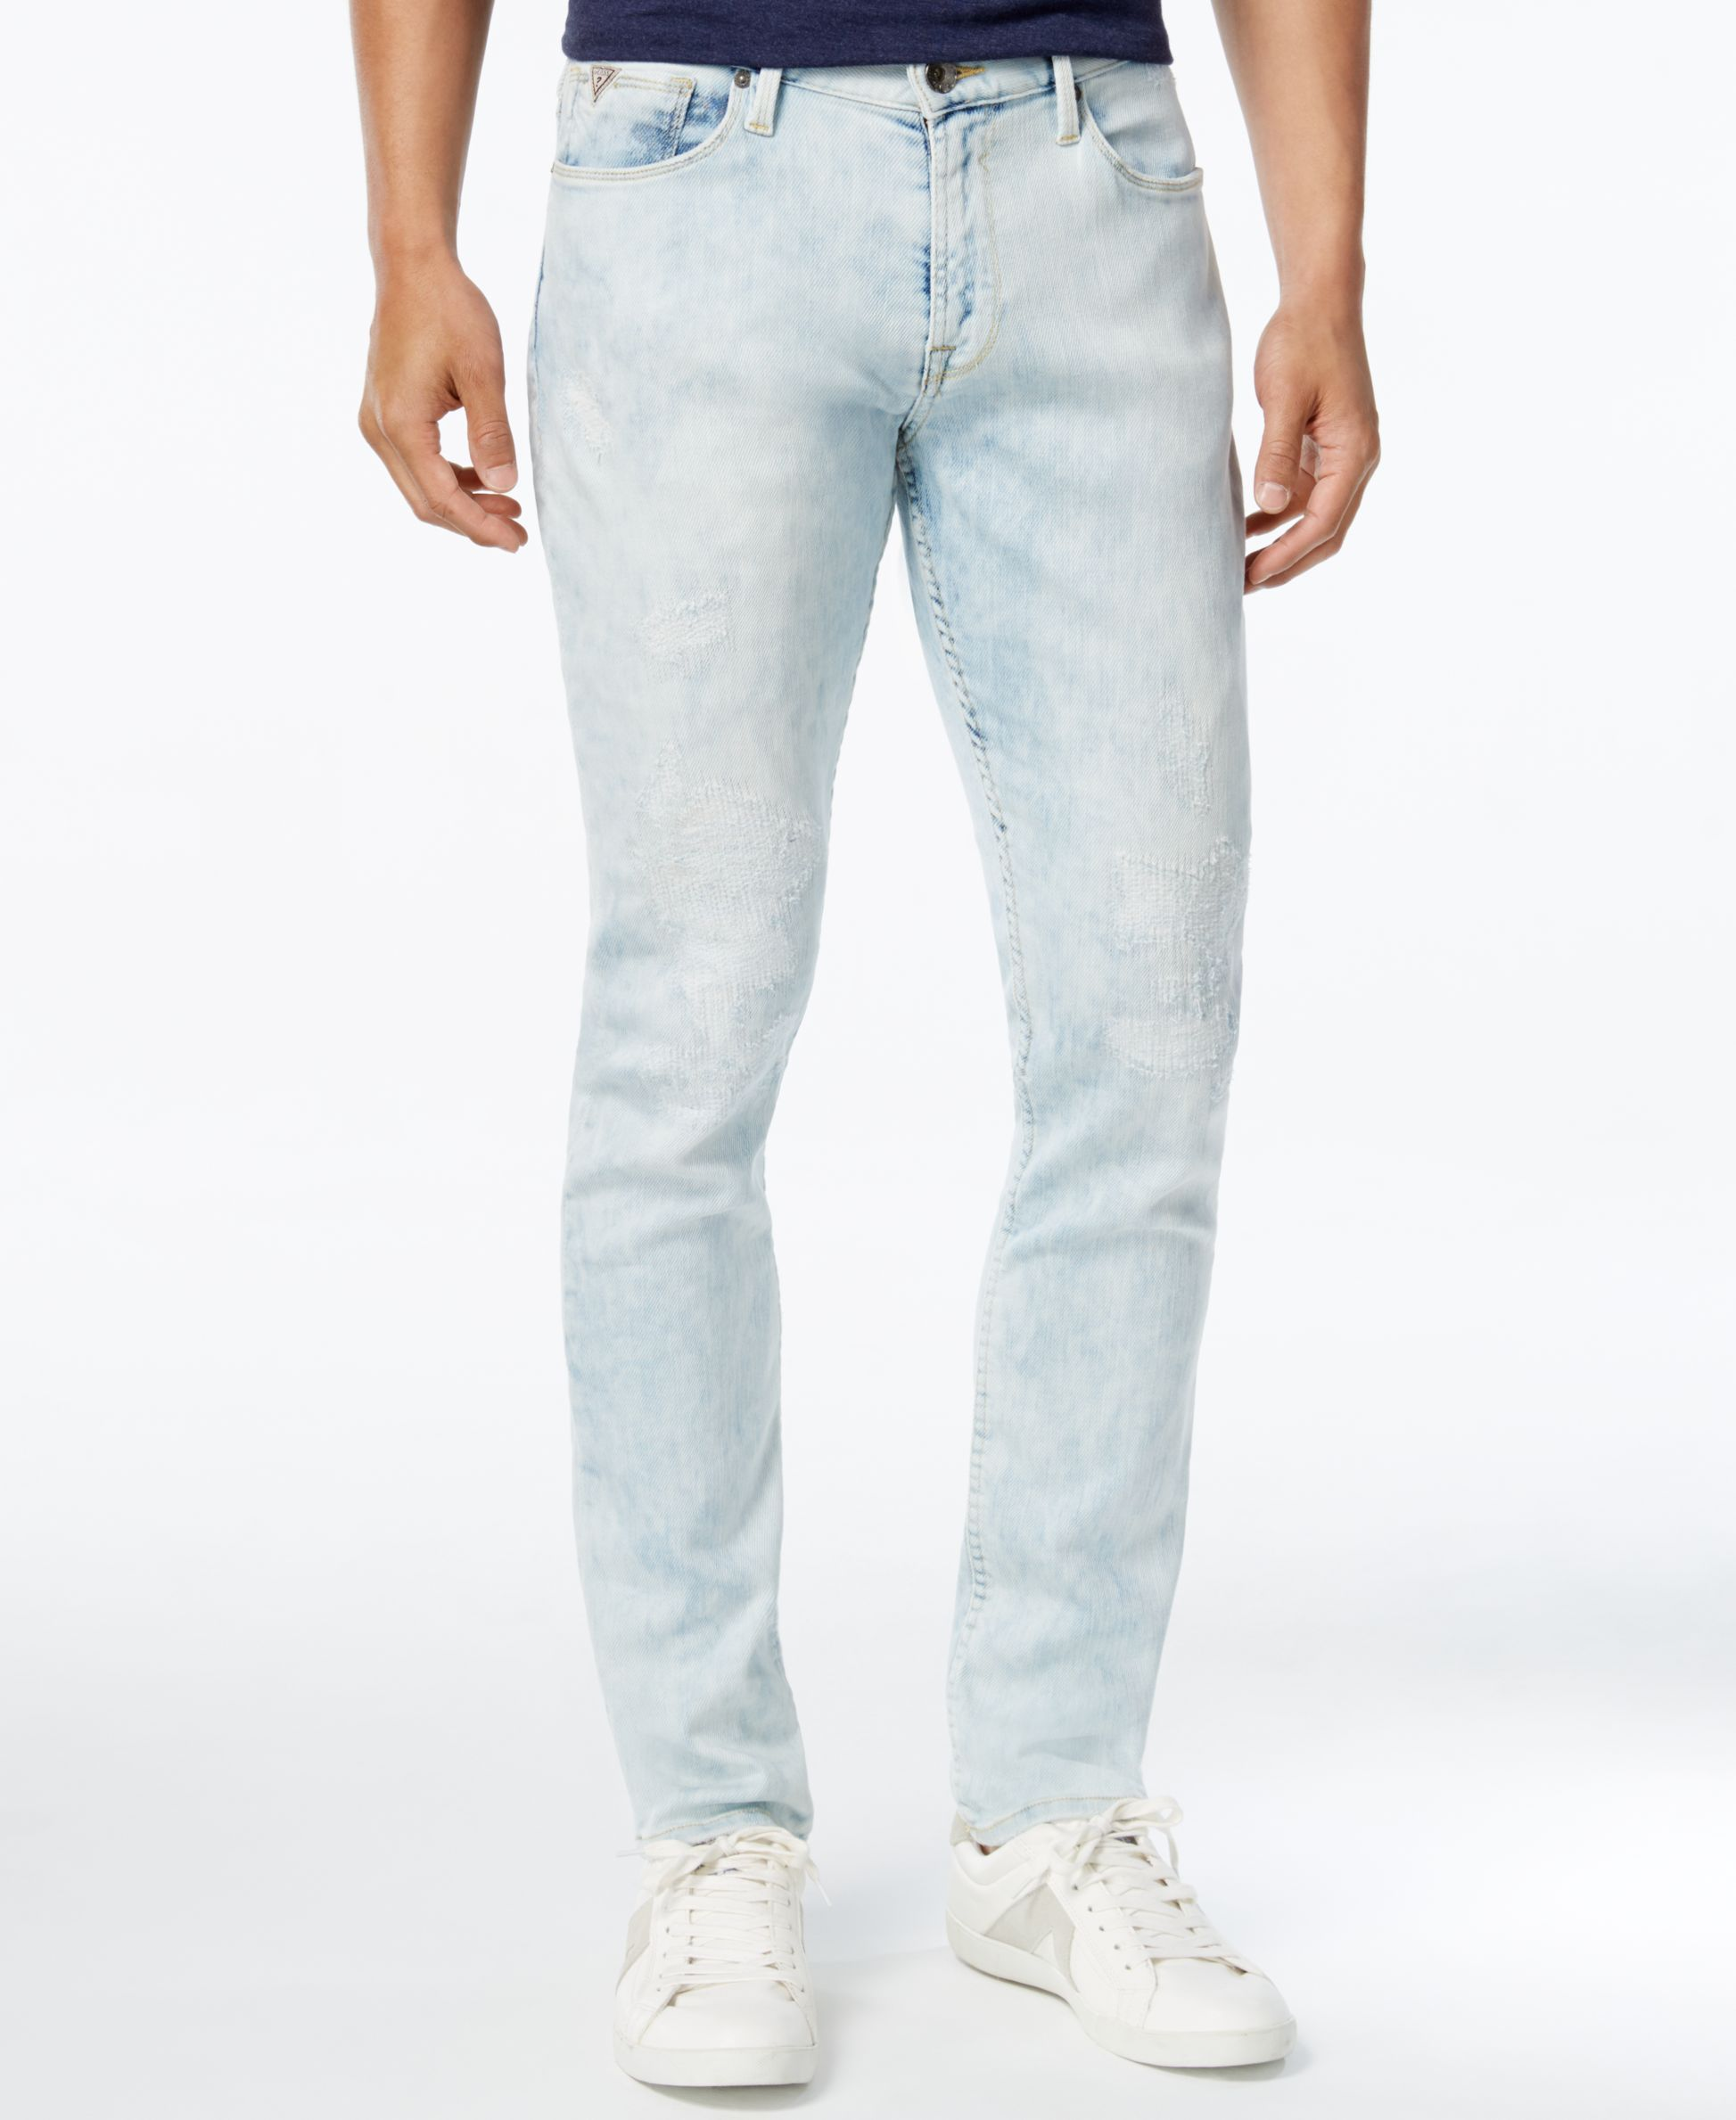 c457ef8b7a22 Guess Men s Slim-Fit Tapered Jeans   Products   Pinterest   Tapered ...